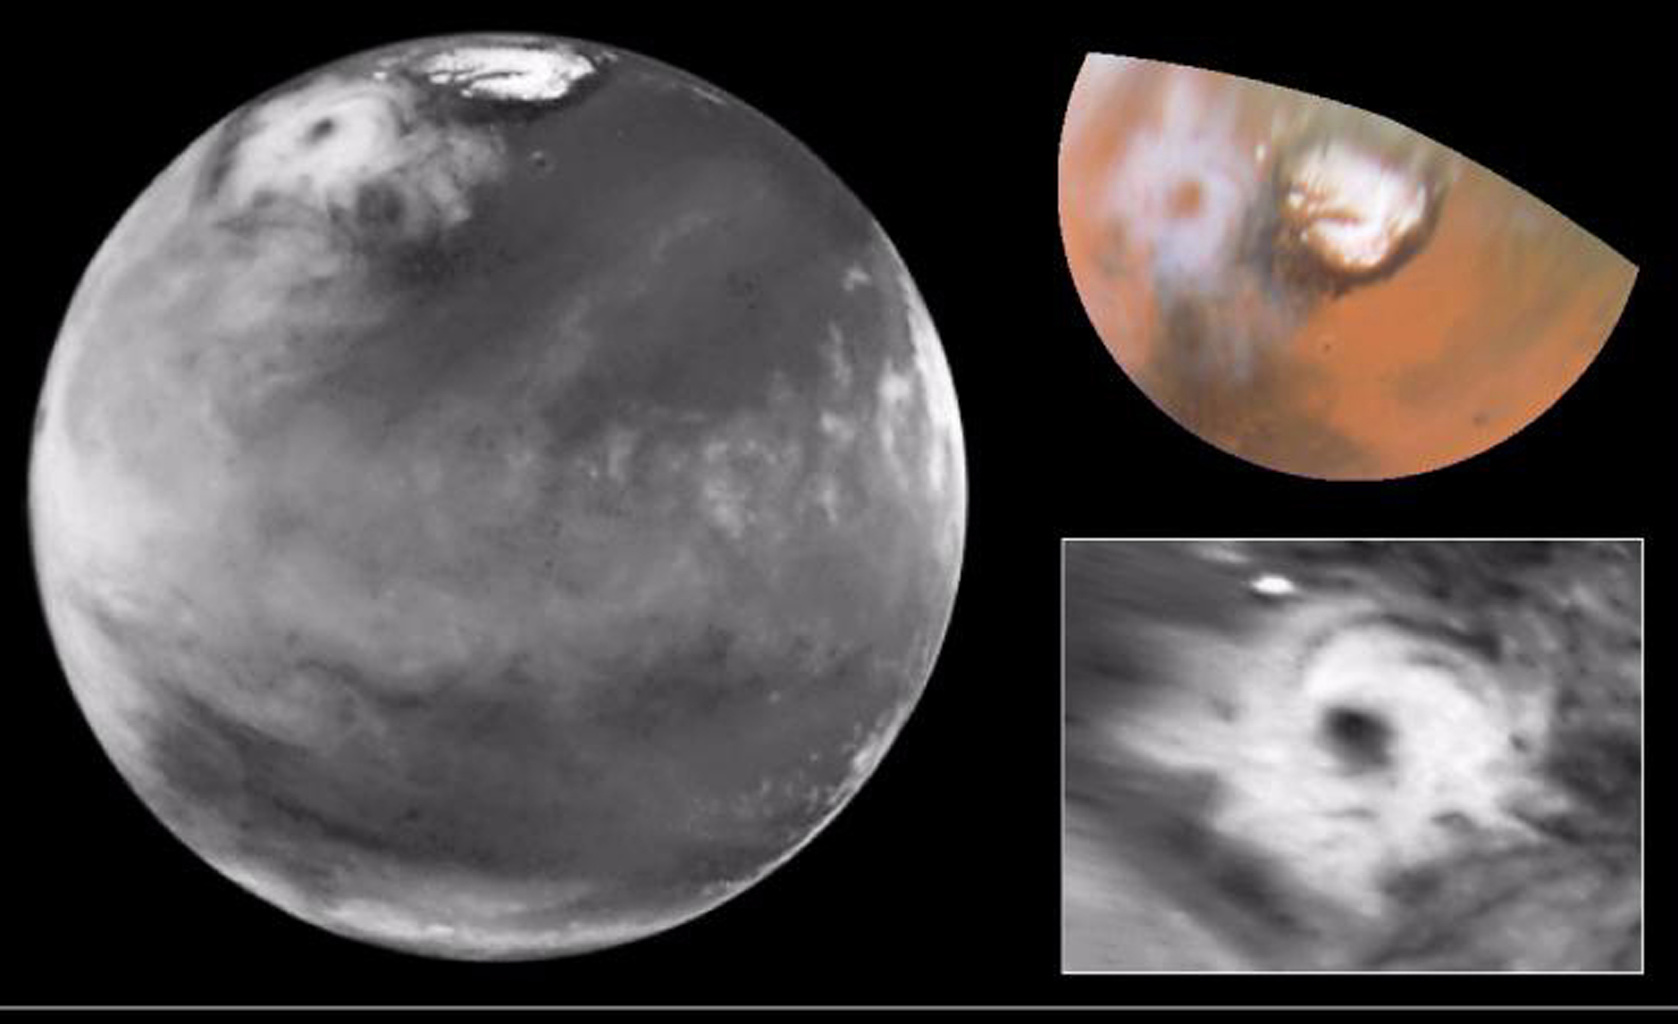 Here is the discovery image (left) from NASA's Hubble Space Telescope of the Martian polar storm as seen in blue light (410 nm). The storm is located near 65 deg.